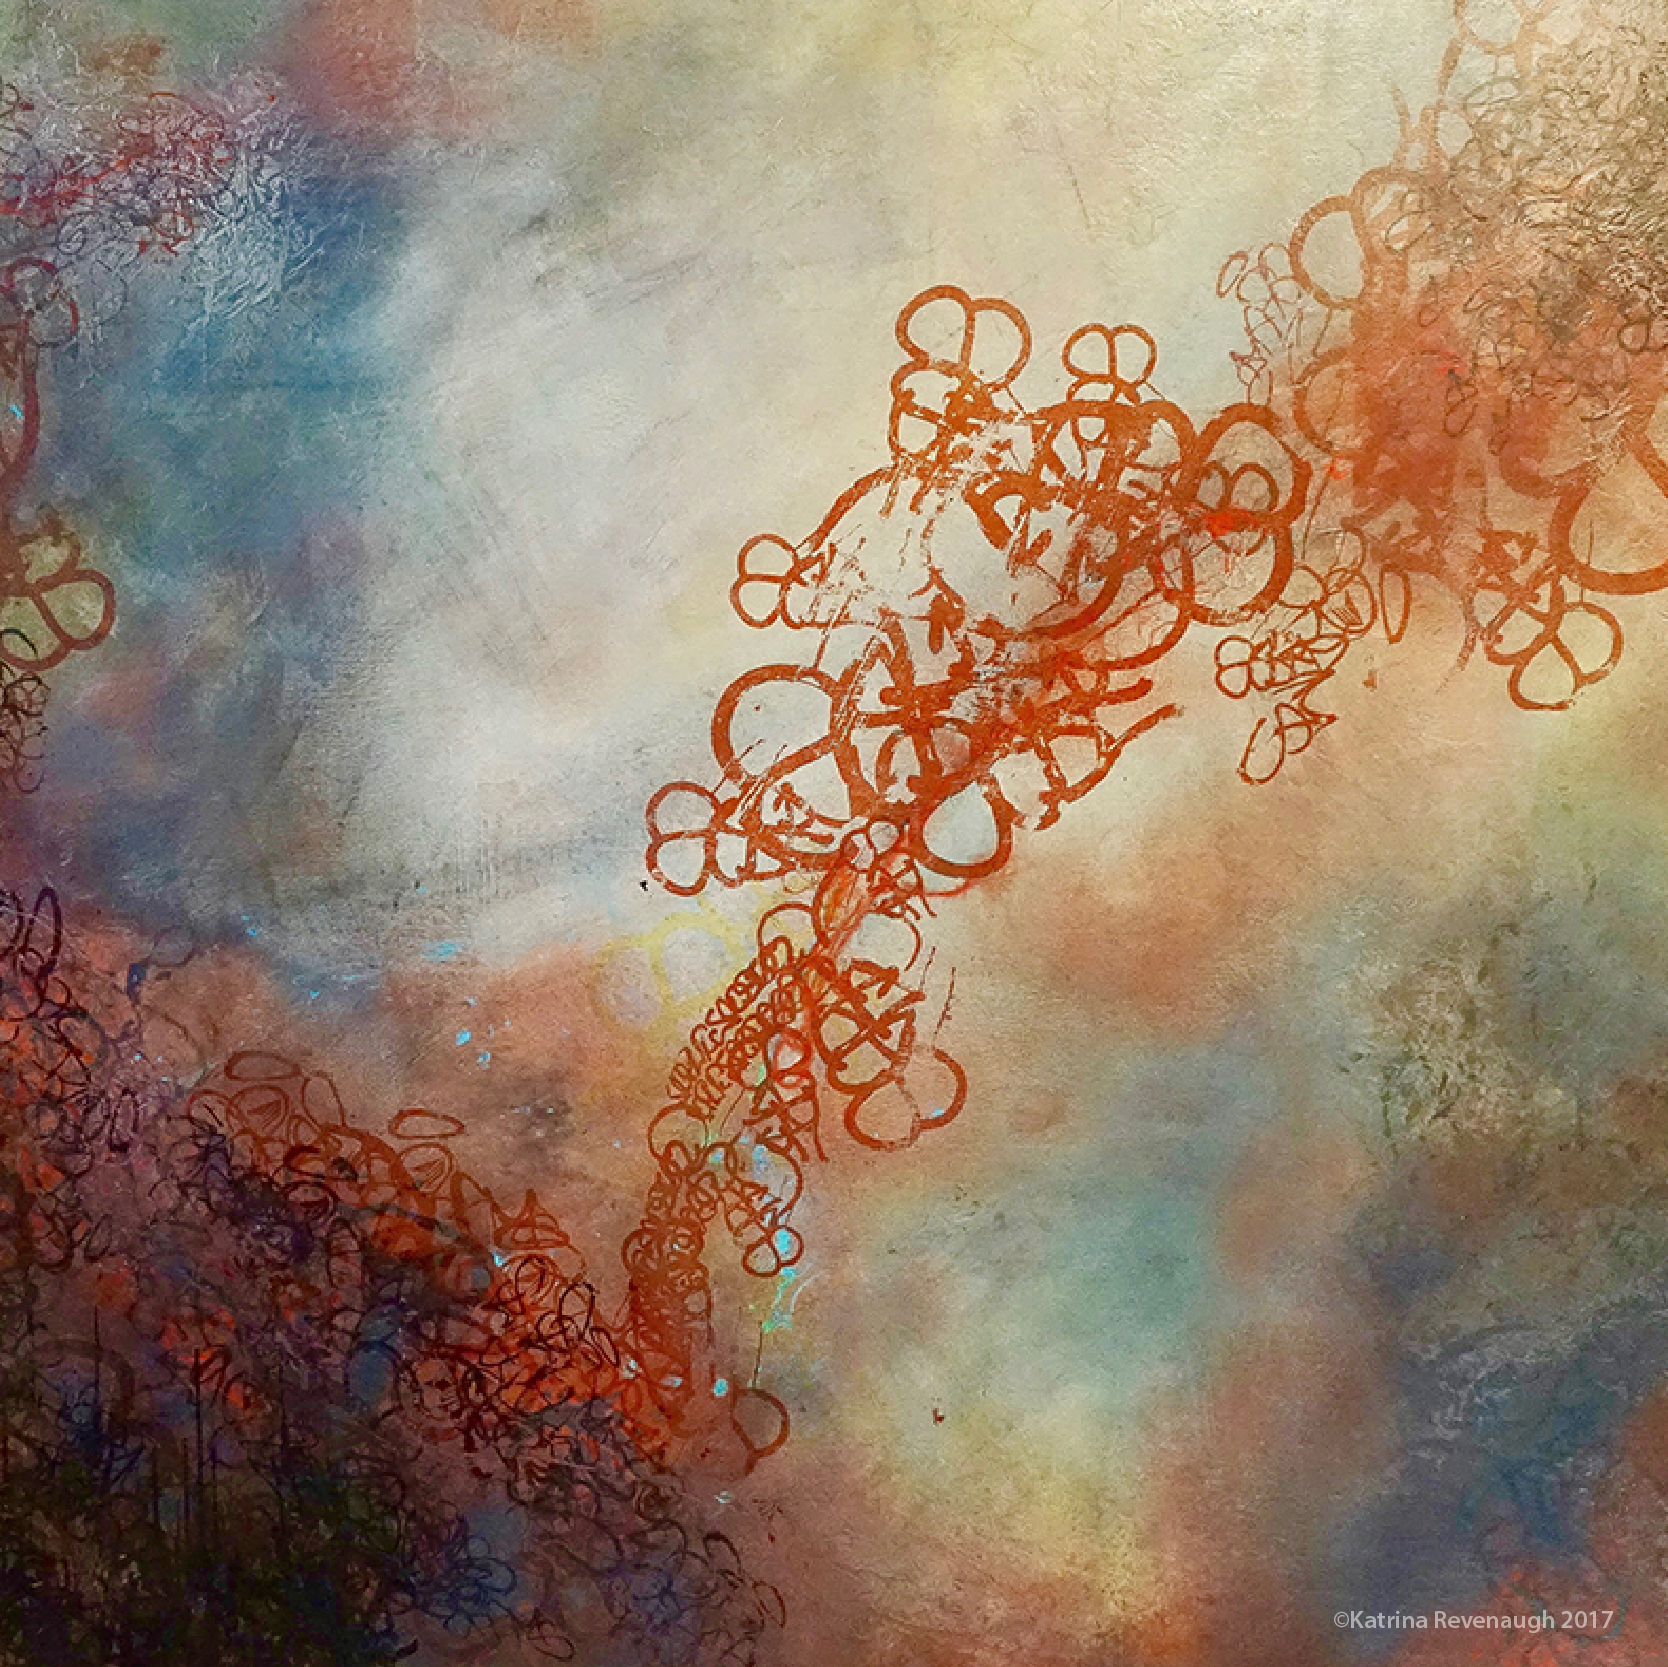 "Connected No. 6 48"" x 48"" Mixed Media/Hand Printing on Birch"